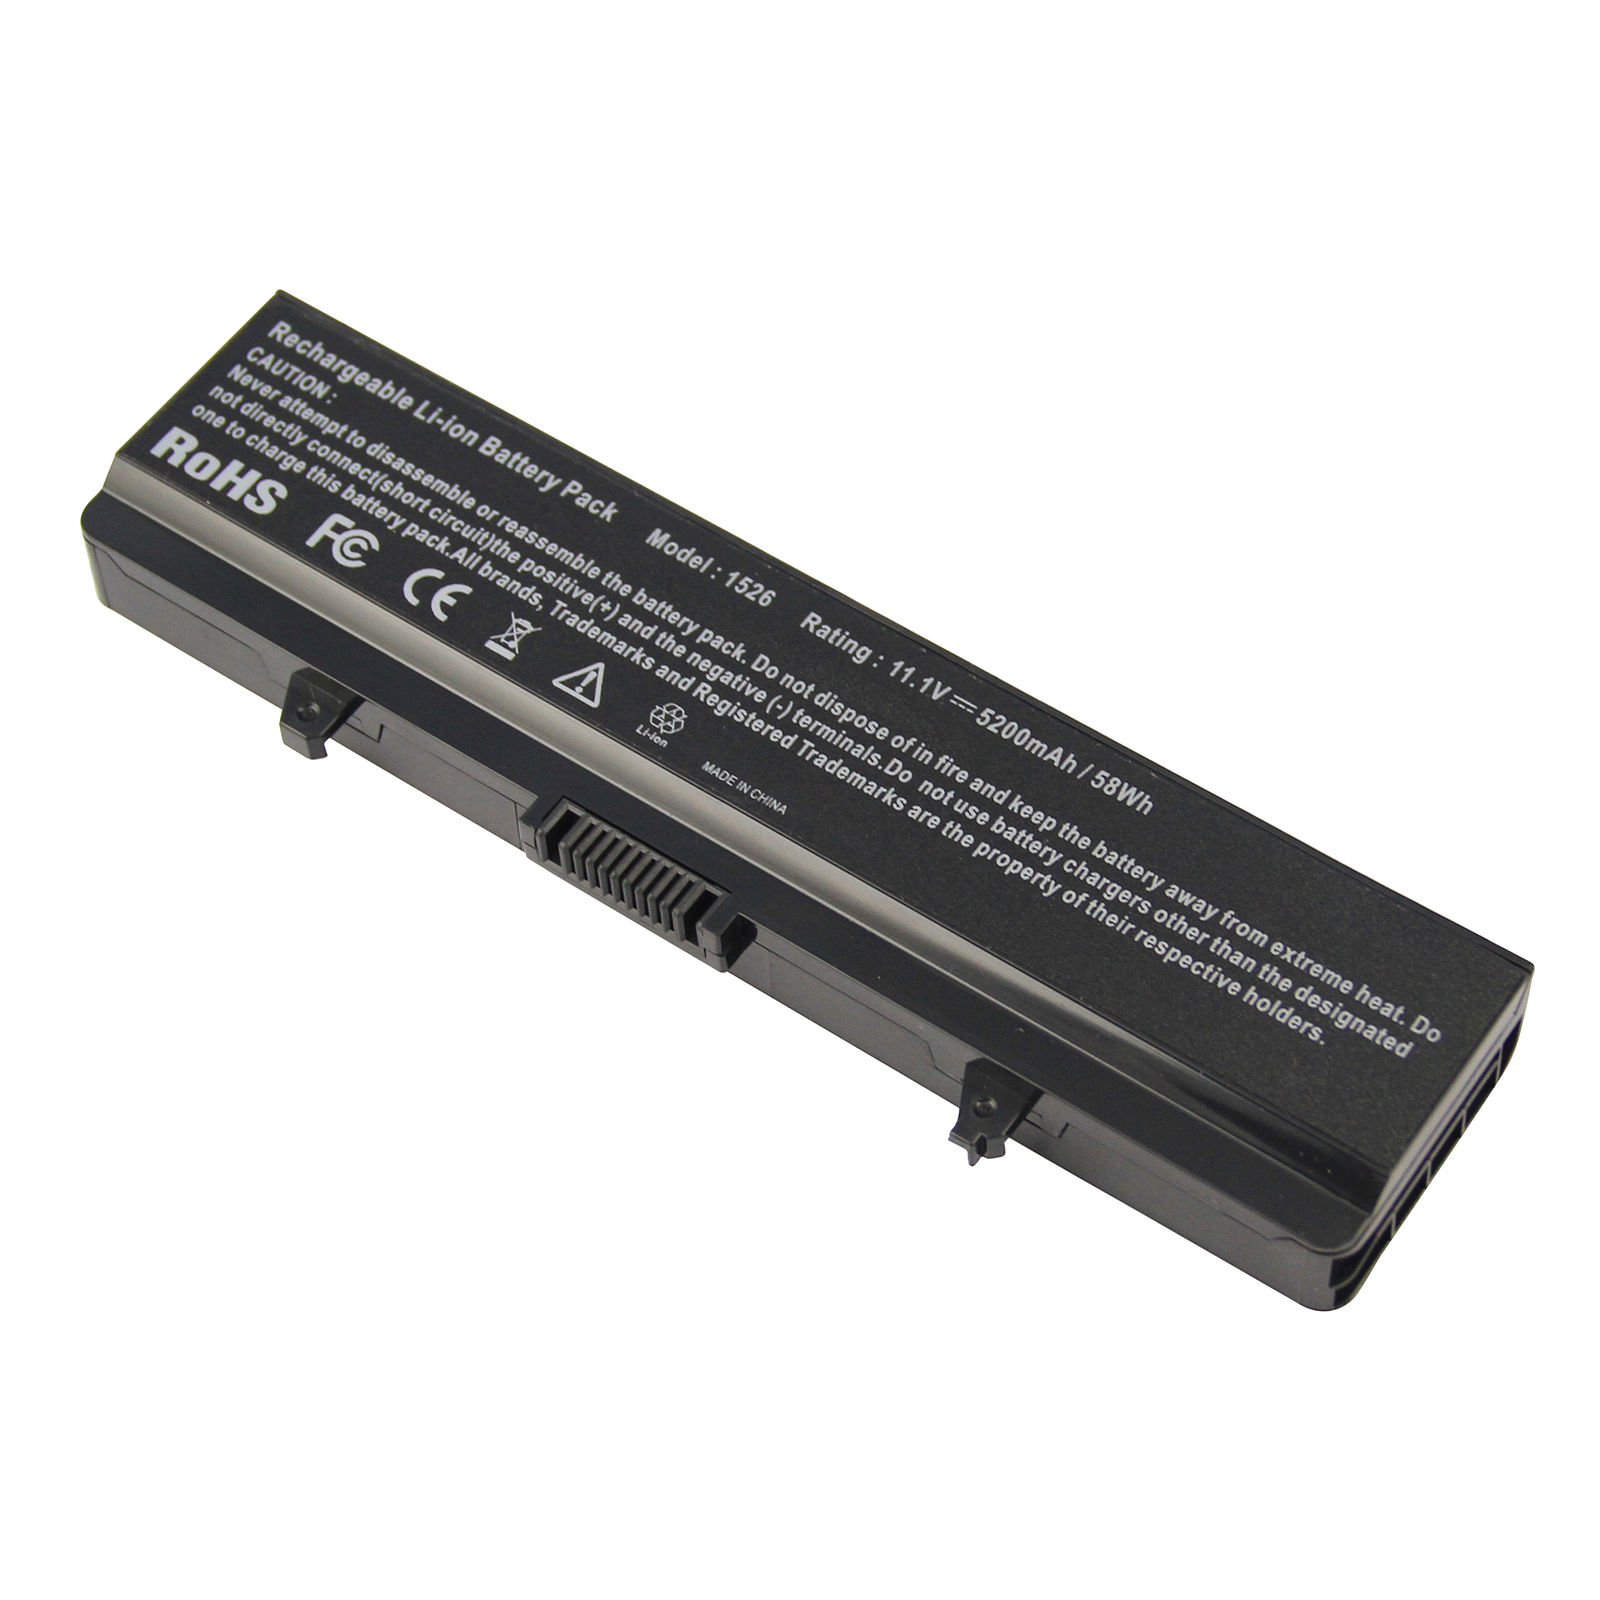 Replacement Dell Inspiron 1526 Battery